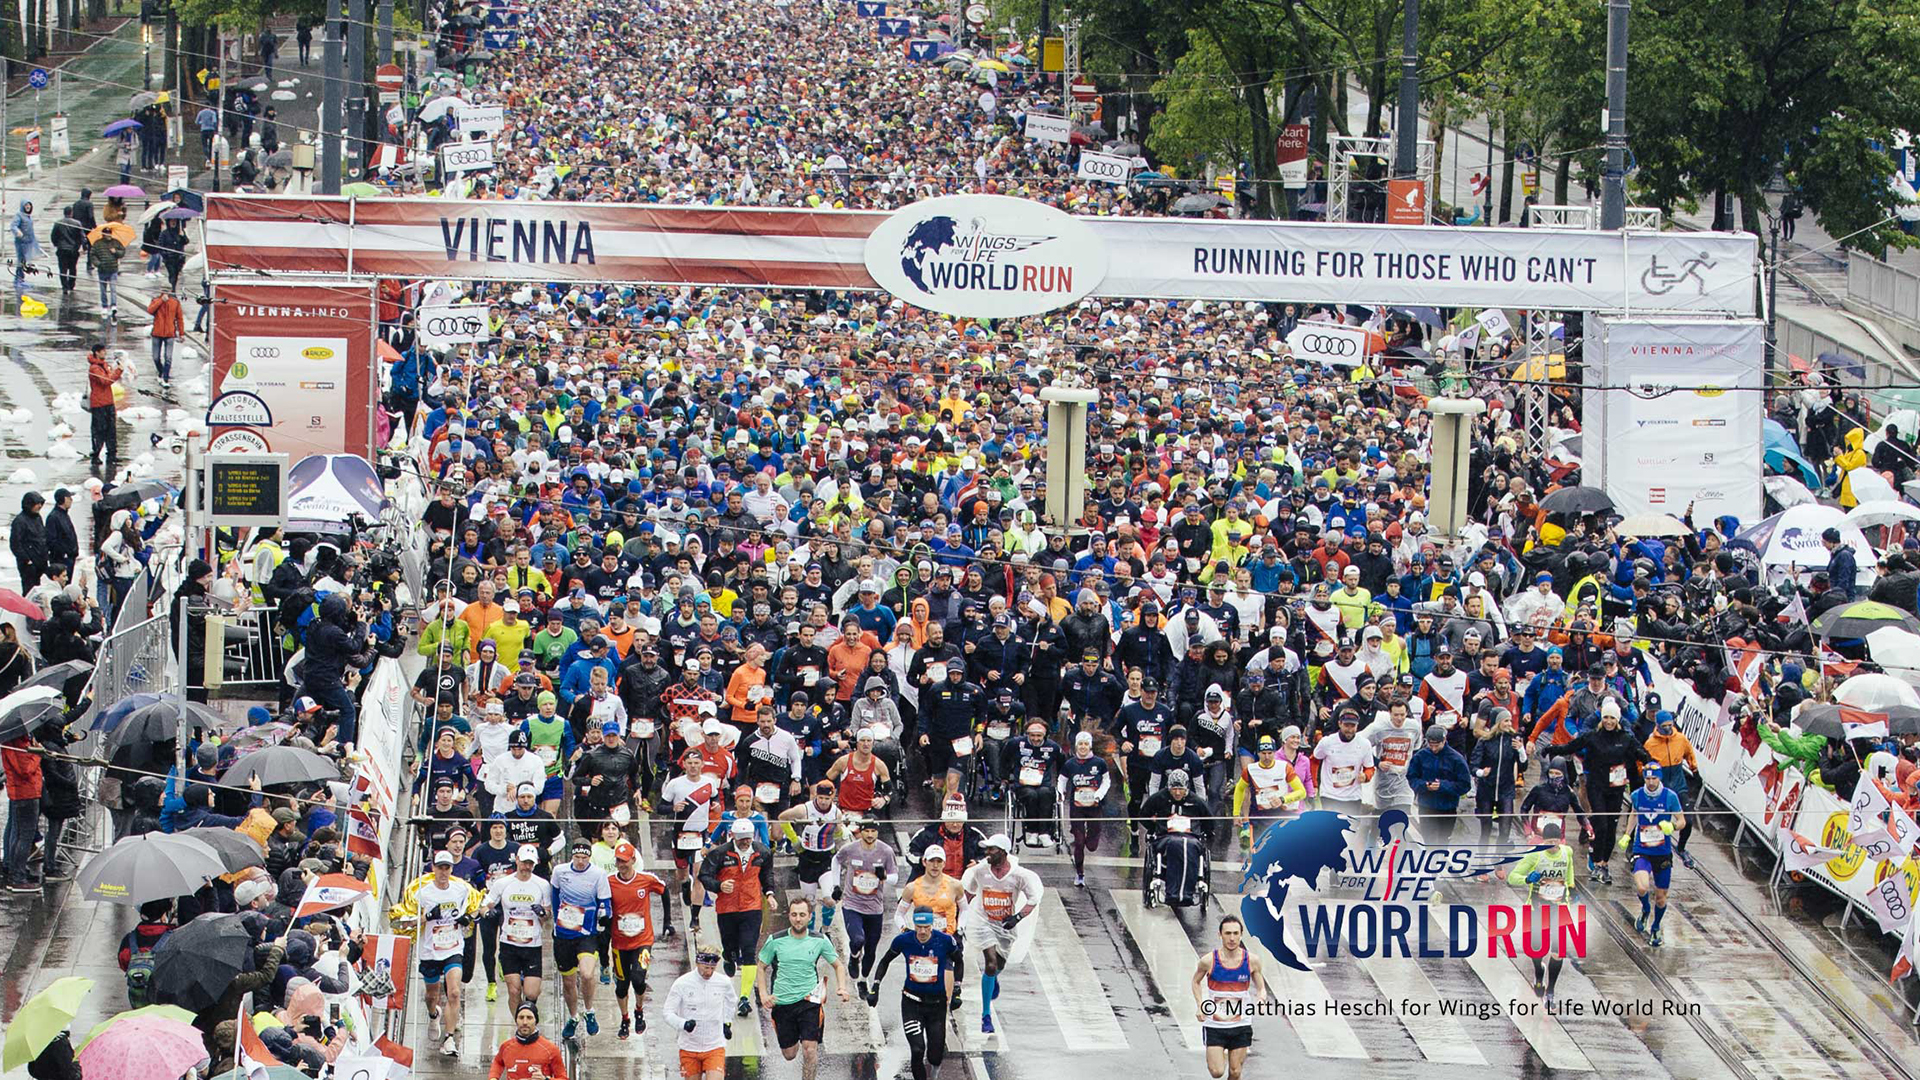 Wings For Life World Run